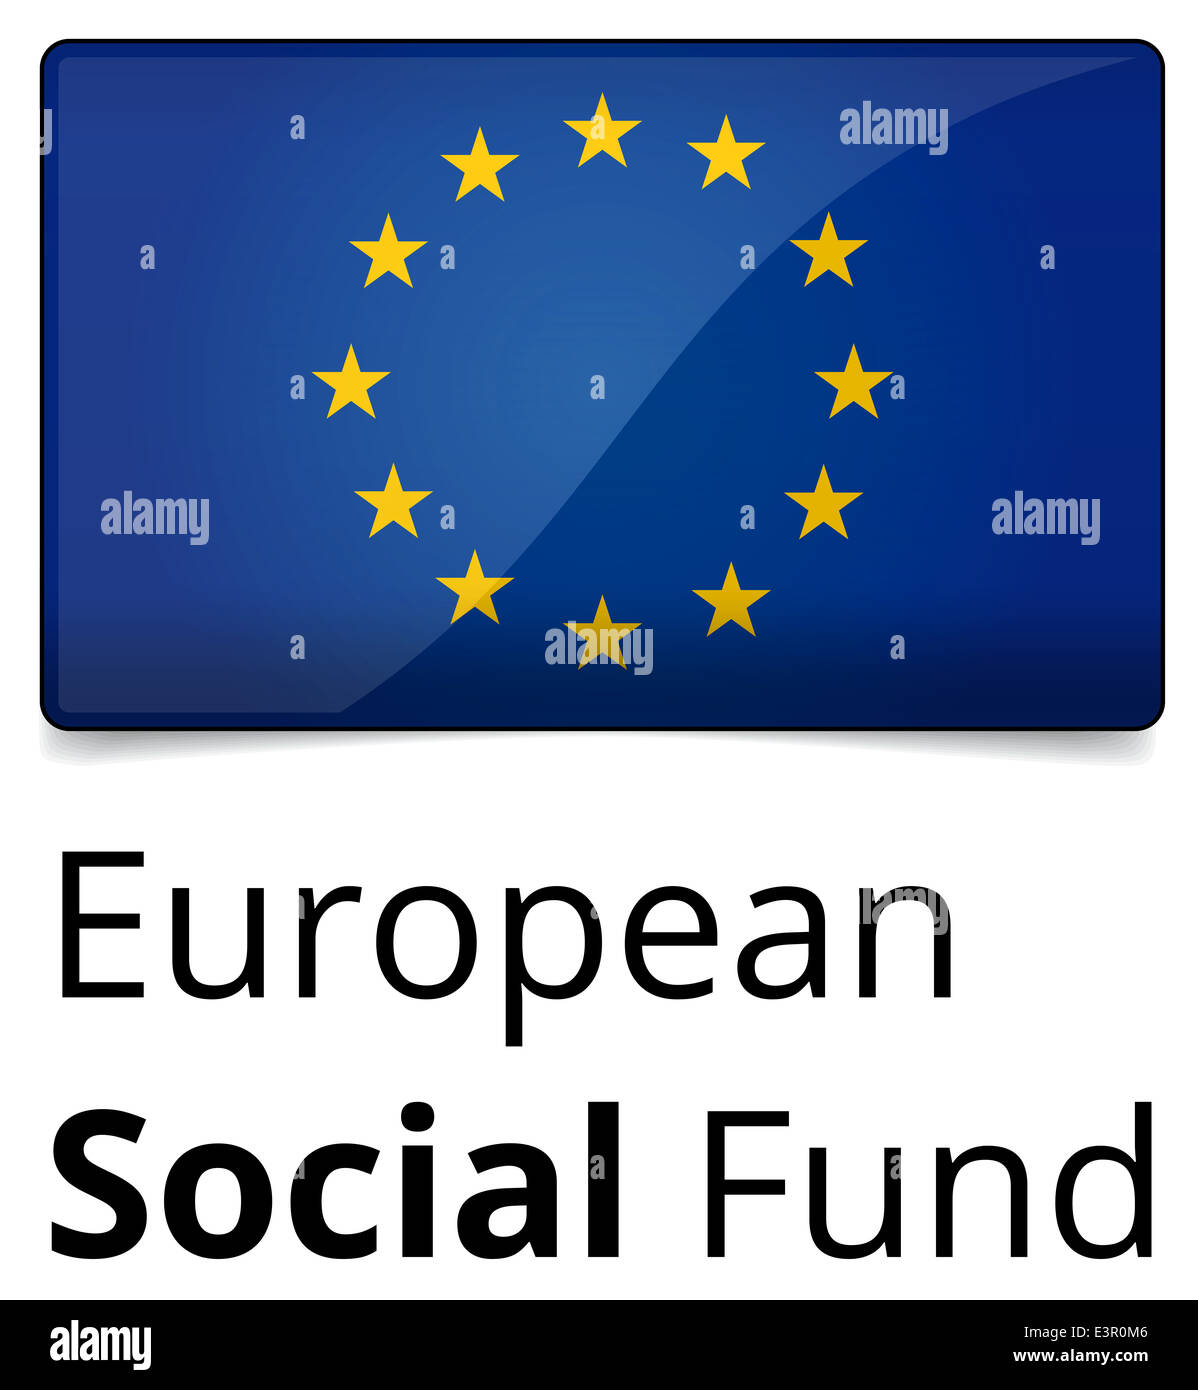 European Social Fund - glossy design with EU flag, text and shadow on white background Stock Photo